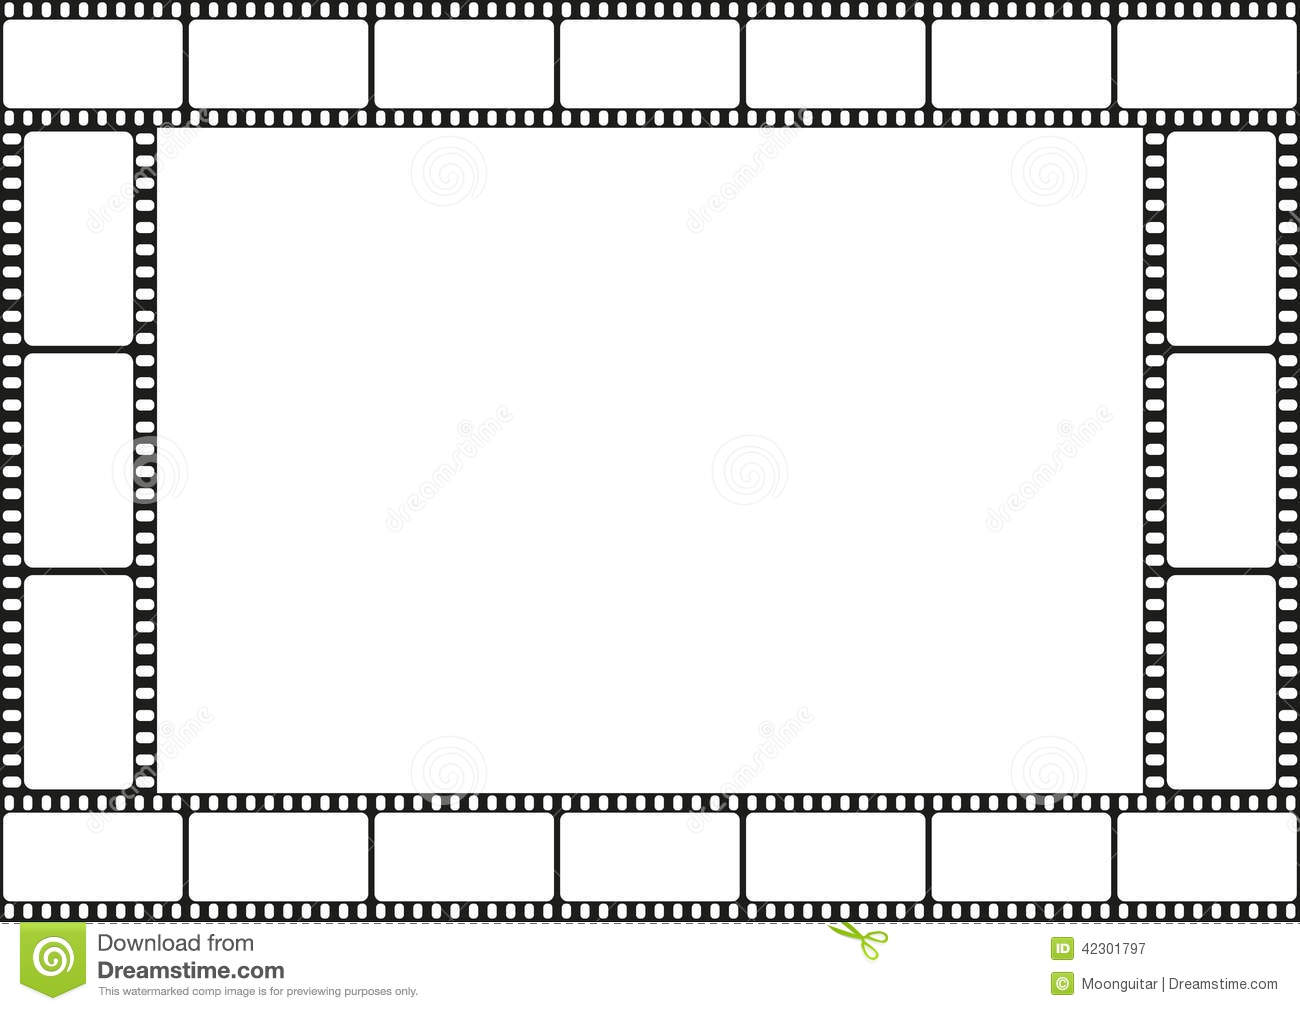 Raffle Movie Ticket Templates also Free Printables Home Movie Theatre as well Beauty And The Beast 2017 Souvenir Movie together with 06252015 Carlas Custom Popcorn Boxes likewise Backyard Under The Stars Movie Night. on movie night tickets printable